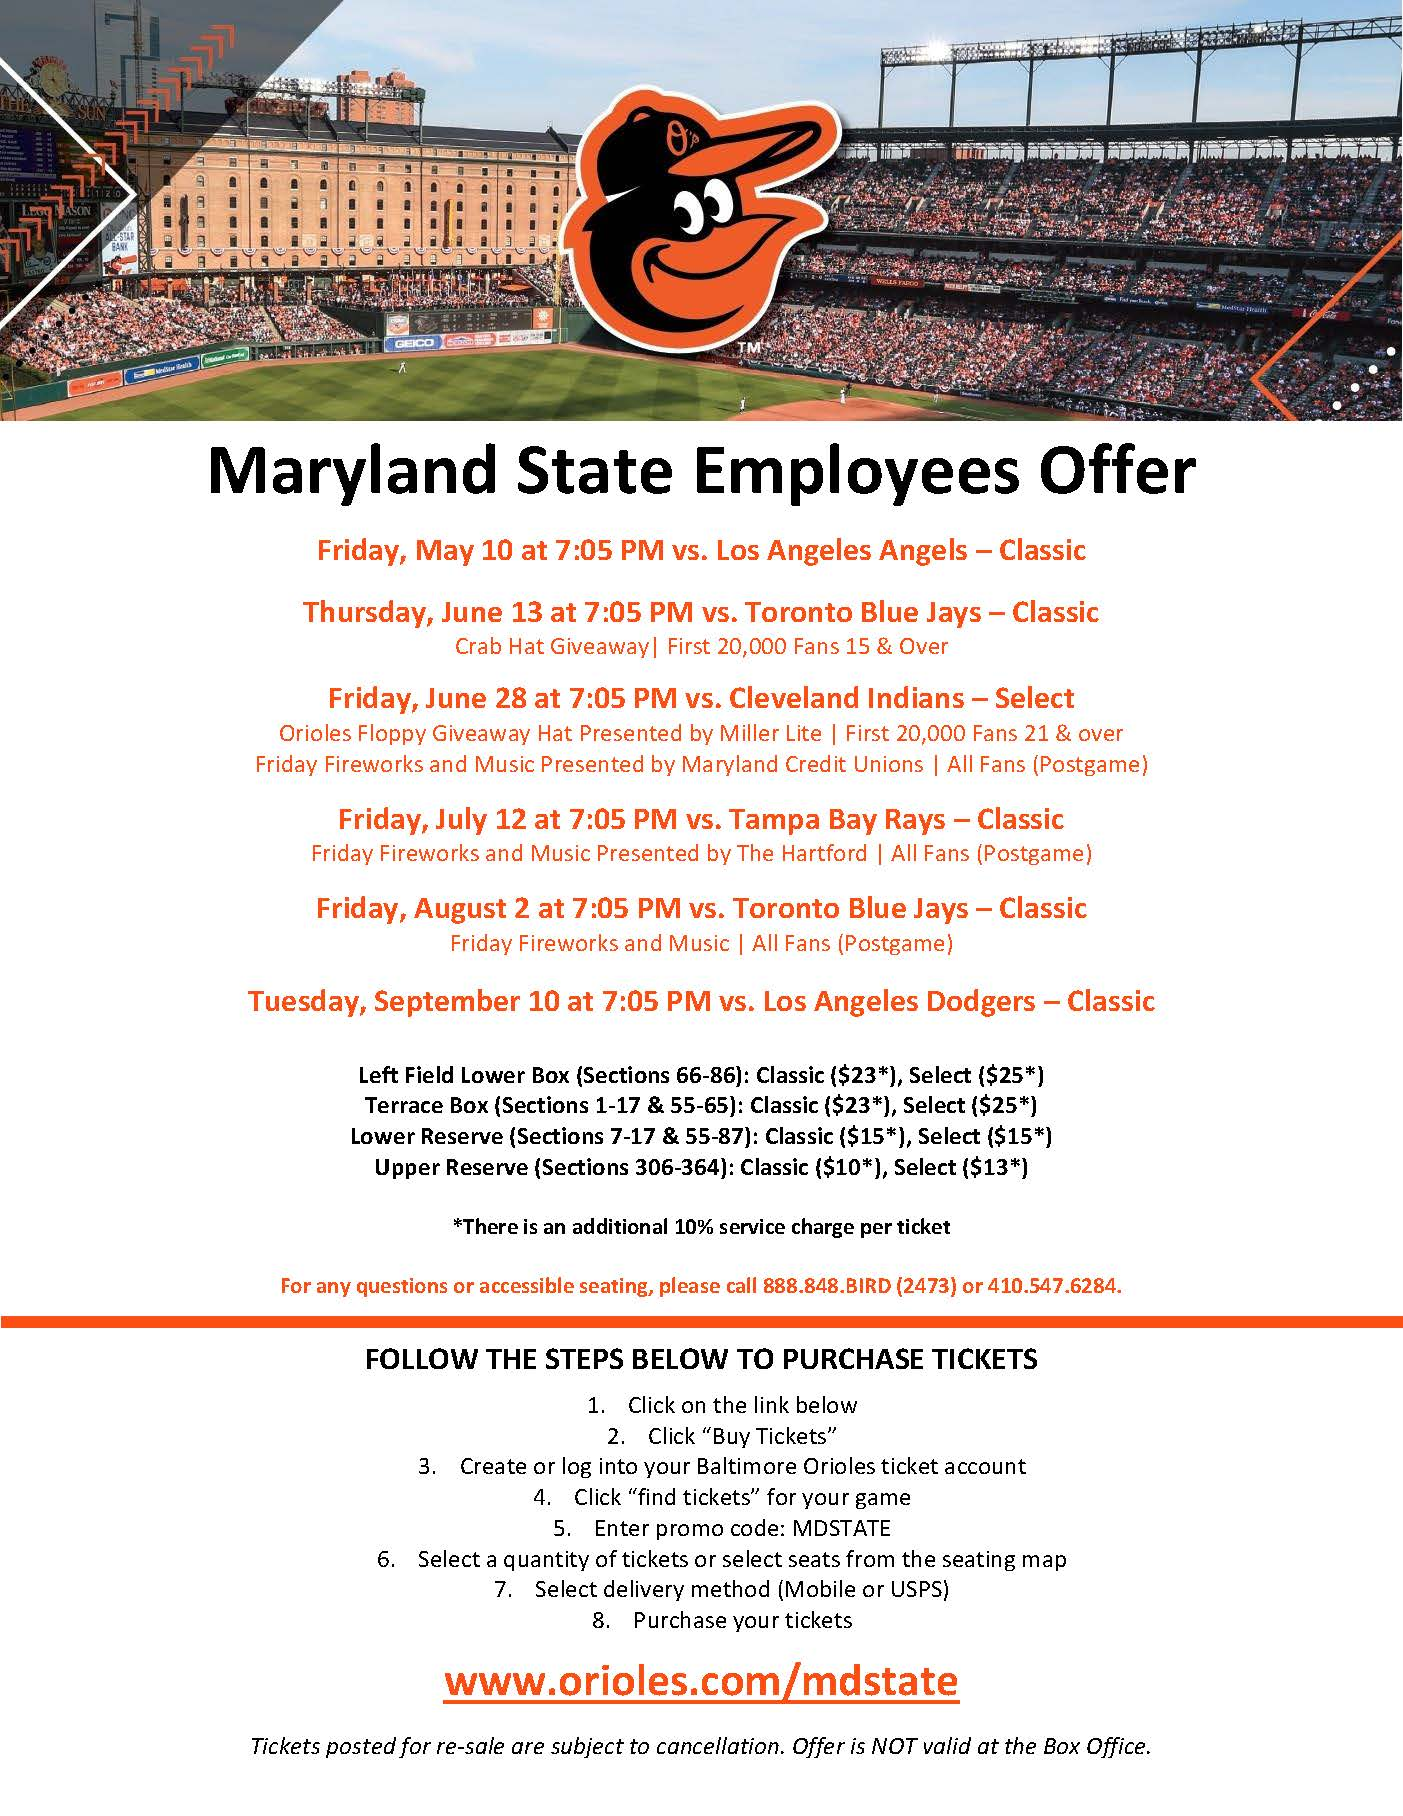 2019 Maryland State Employee Offer